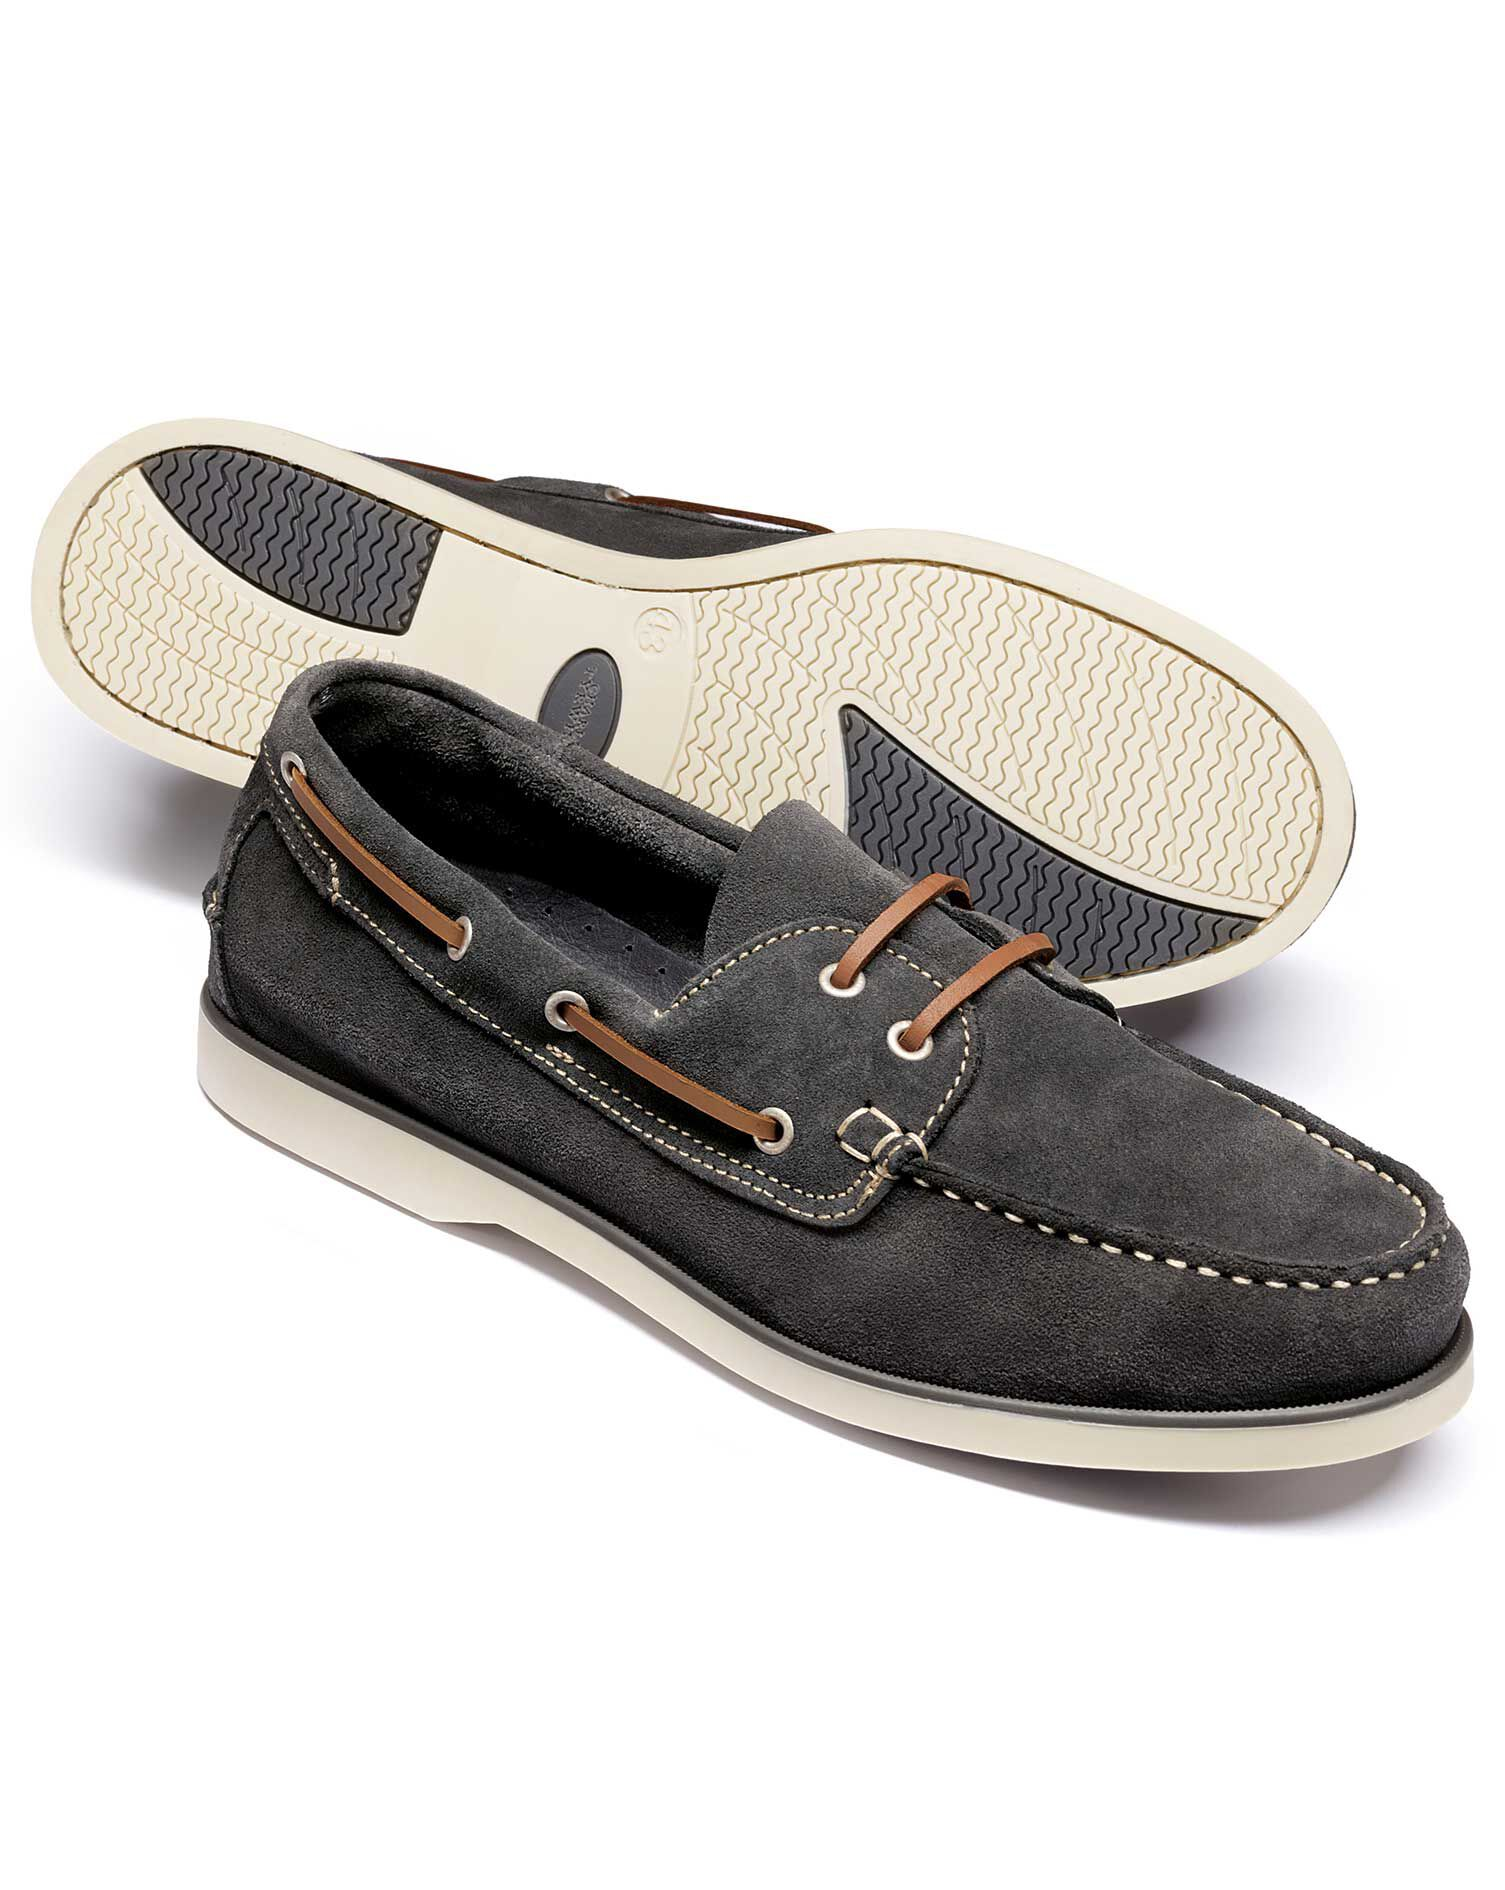 Grey Fowey Suede Boat Shoes Size 6 R by Charles Tyrwhitt